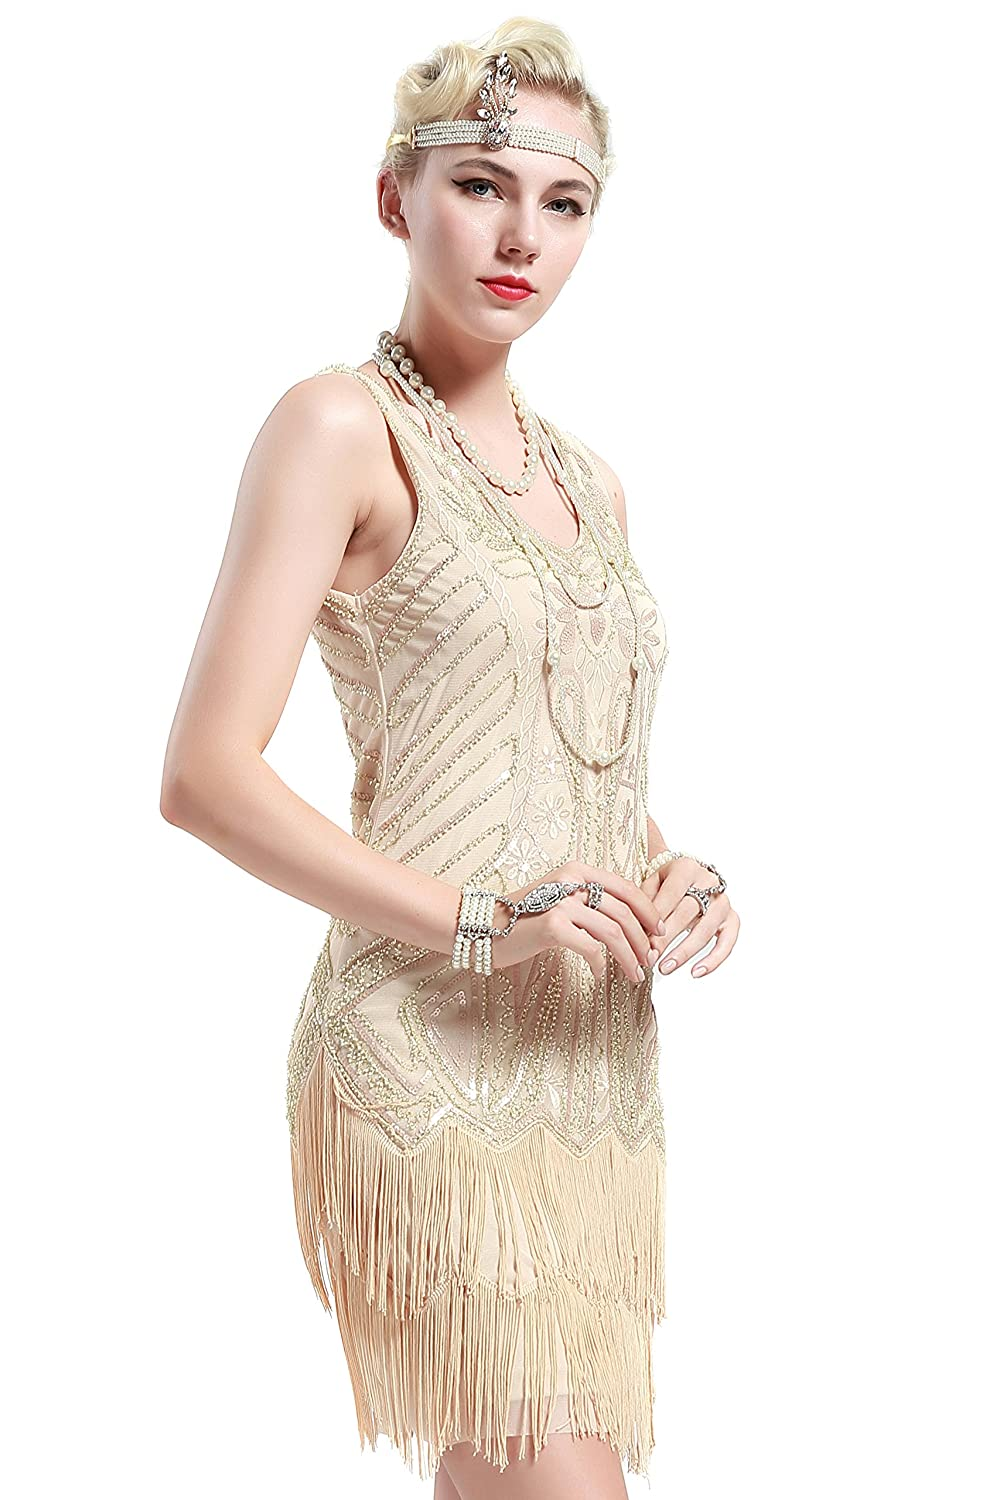 Great Gatsby Dress – Great Gatsby Dresses for Sale Flapper Dresses 1920s V Neck Beaded Fringed Great Gatsby Dress $28.99 AT vintagedancer.com